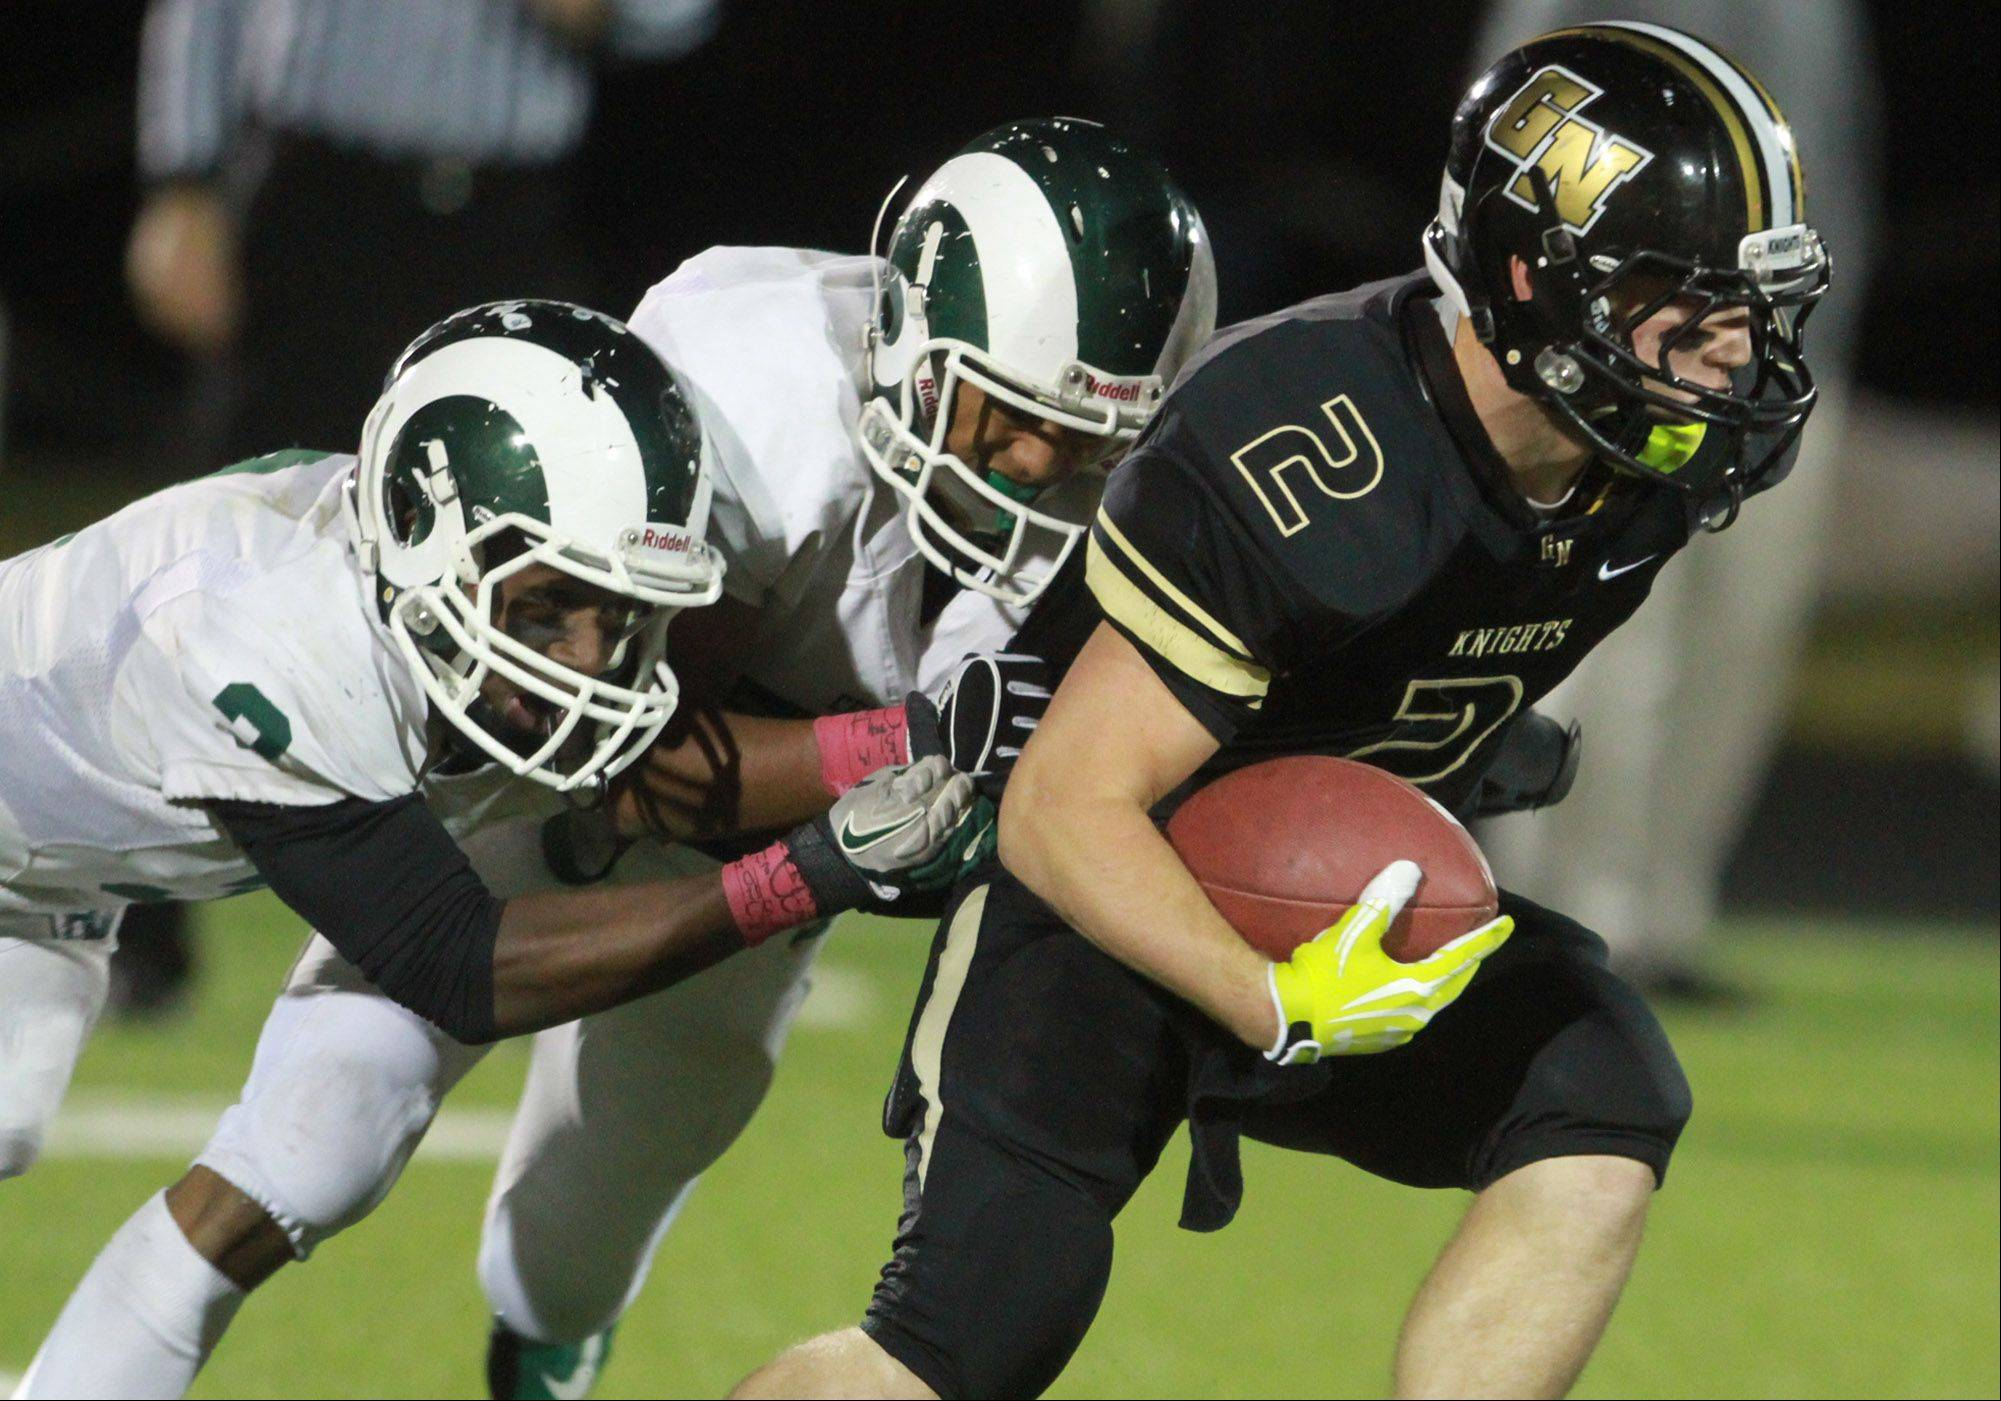 Images: Grayslake Central vs. Grayslake North football